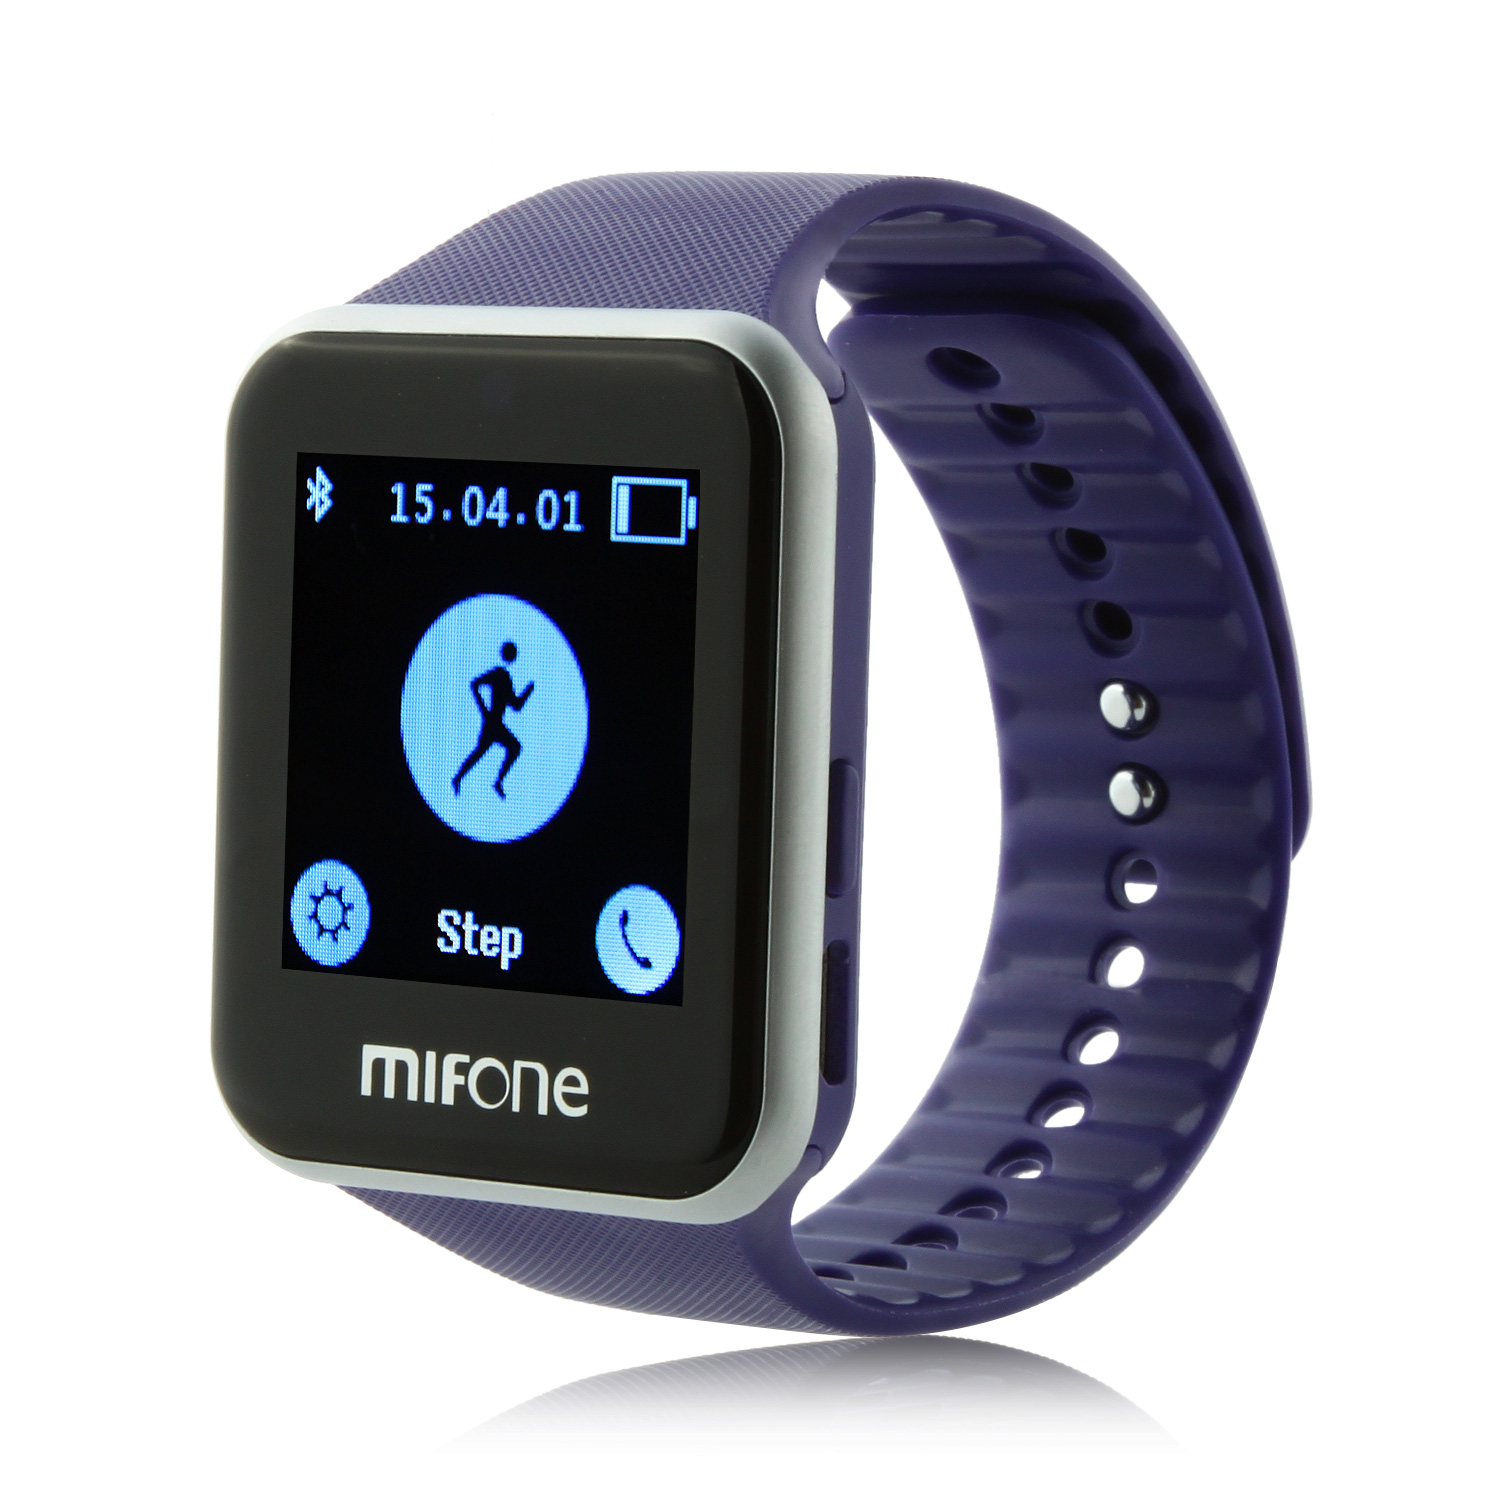 "MIFone W15 2.5D Sapphire Glass Smart Bluetooth Watch 1.5""Screen TPSiV Safe Strap Purple"